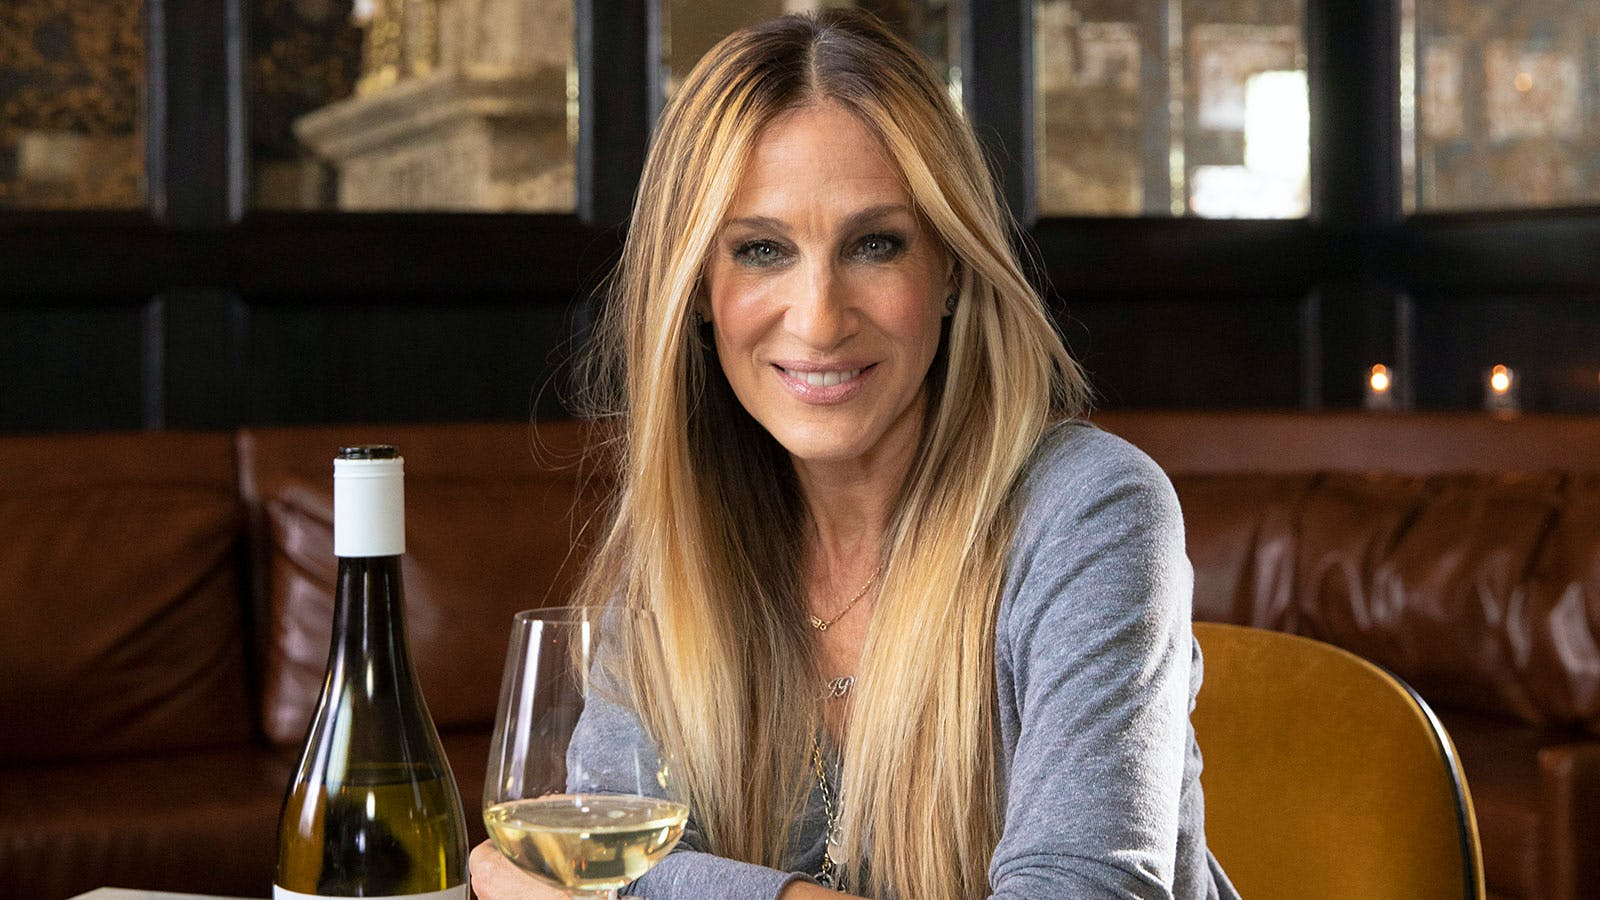 Sarah Jessica Parker Joins Wine Spectator in Upcoming Instagram Live Chat